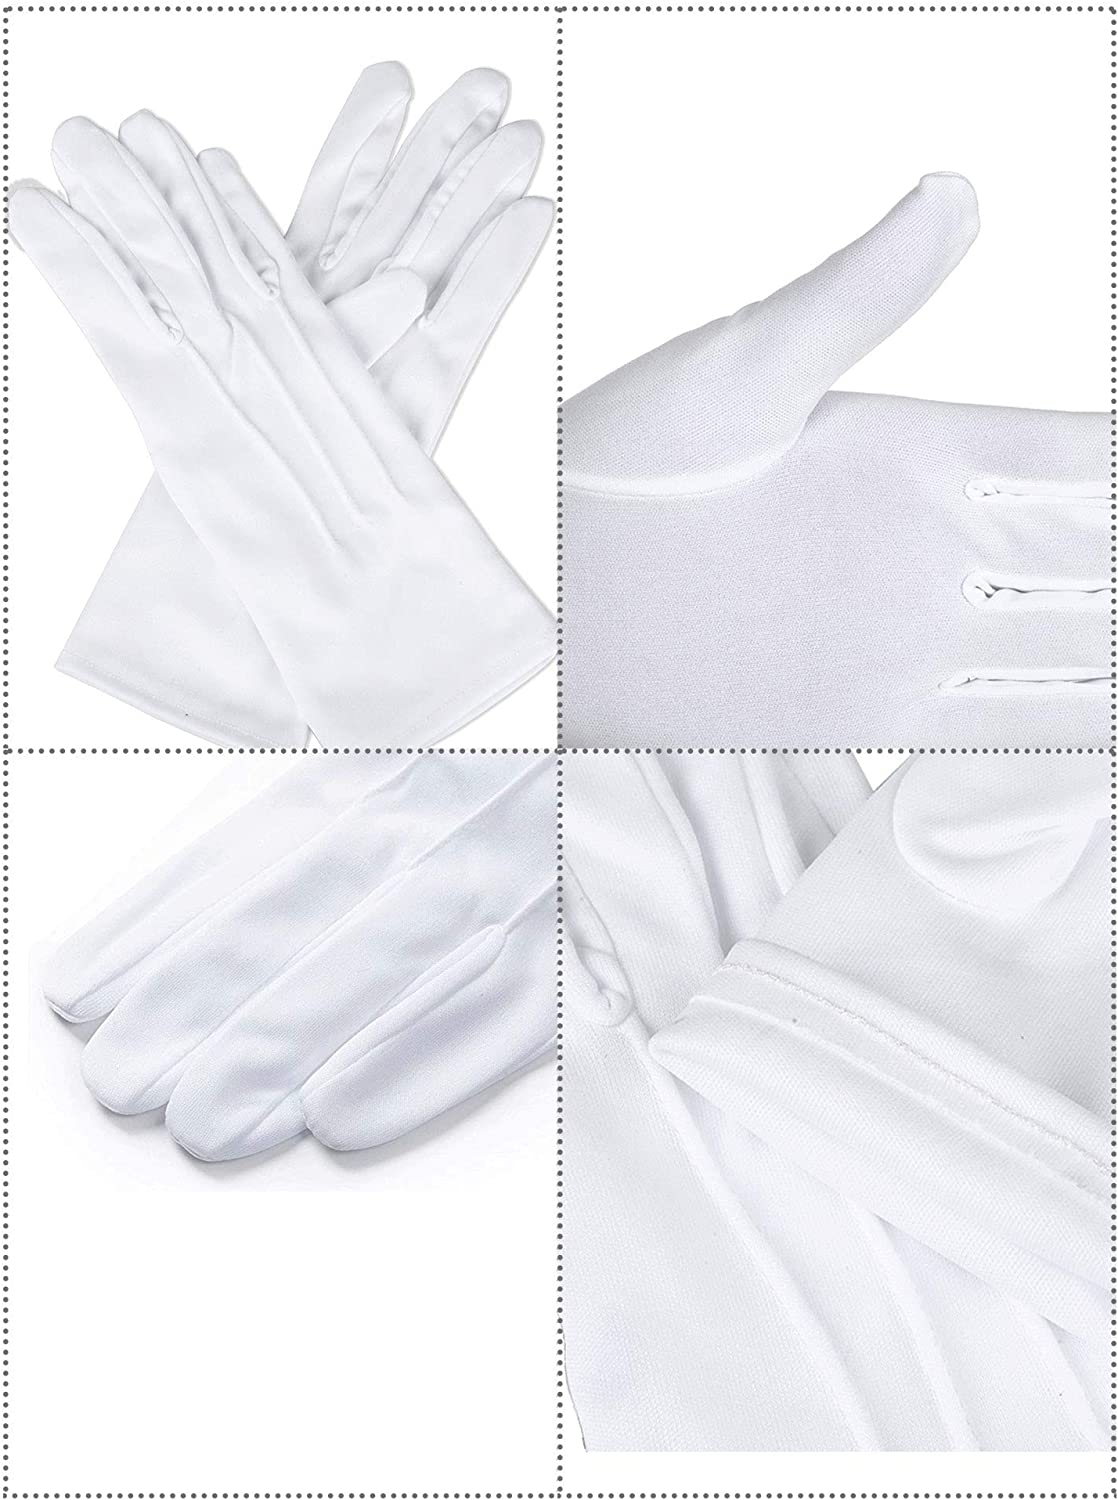 6 Pairs Uniform Gloves Parade Costume Gloves for Police Formal Tuxedo Guard (White, Polyester) : Clothing, Shoes & Jewelry